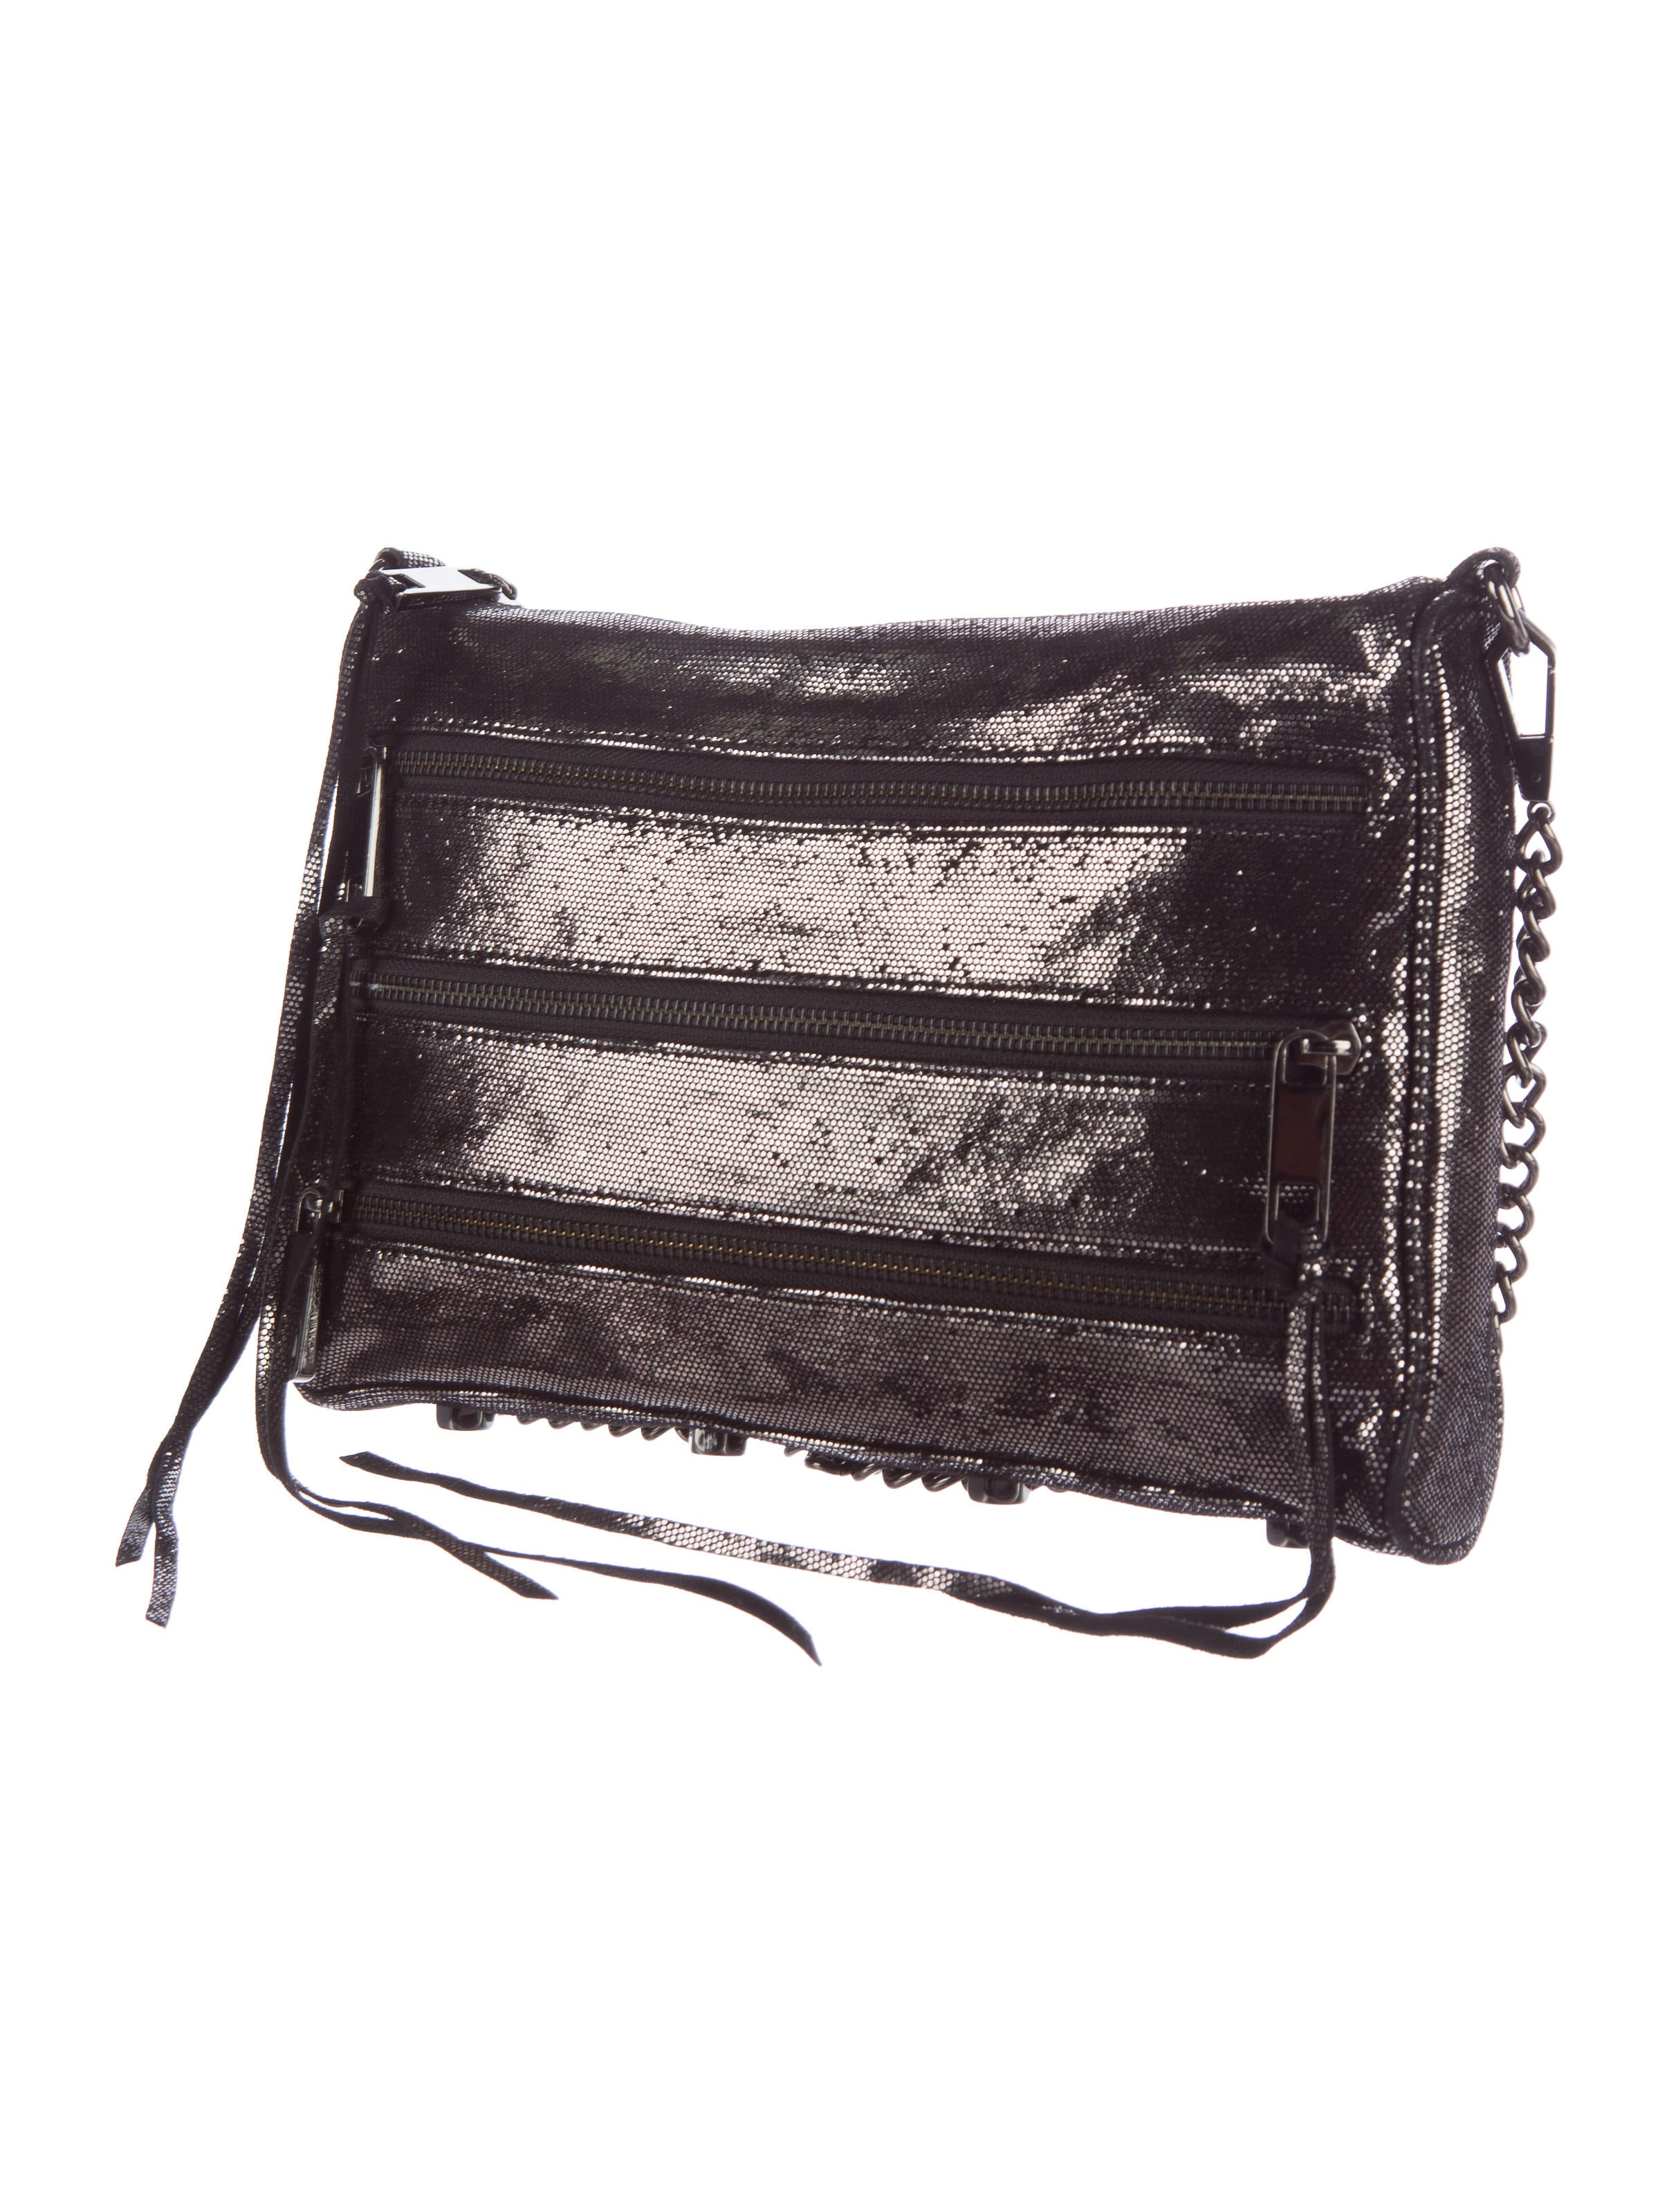 Her exclusive crossbody bag design includes a back zippered pocket for your cell phone, an inside lining with extra pockets, a secure top zippered closure .